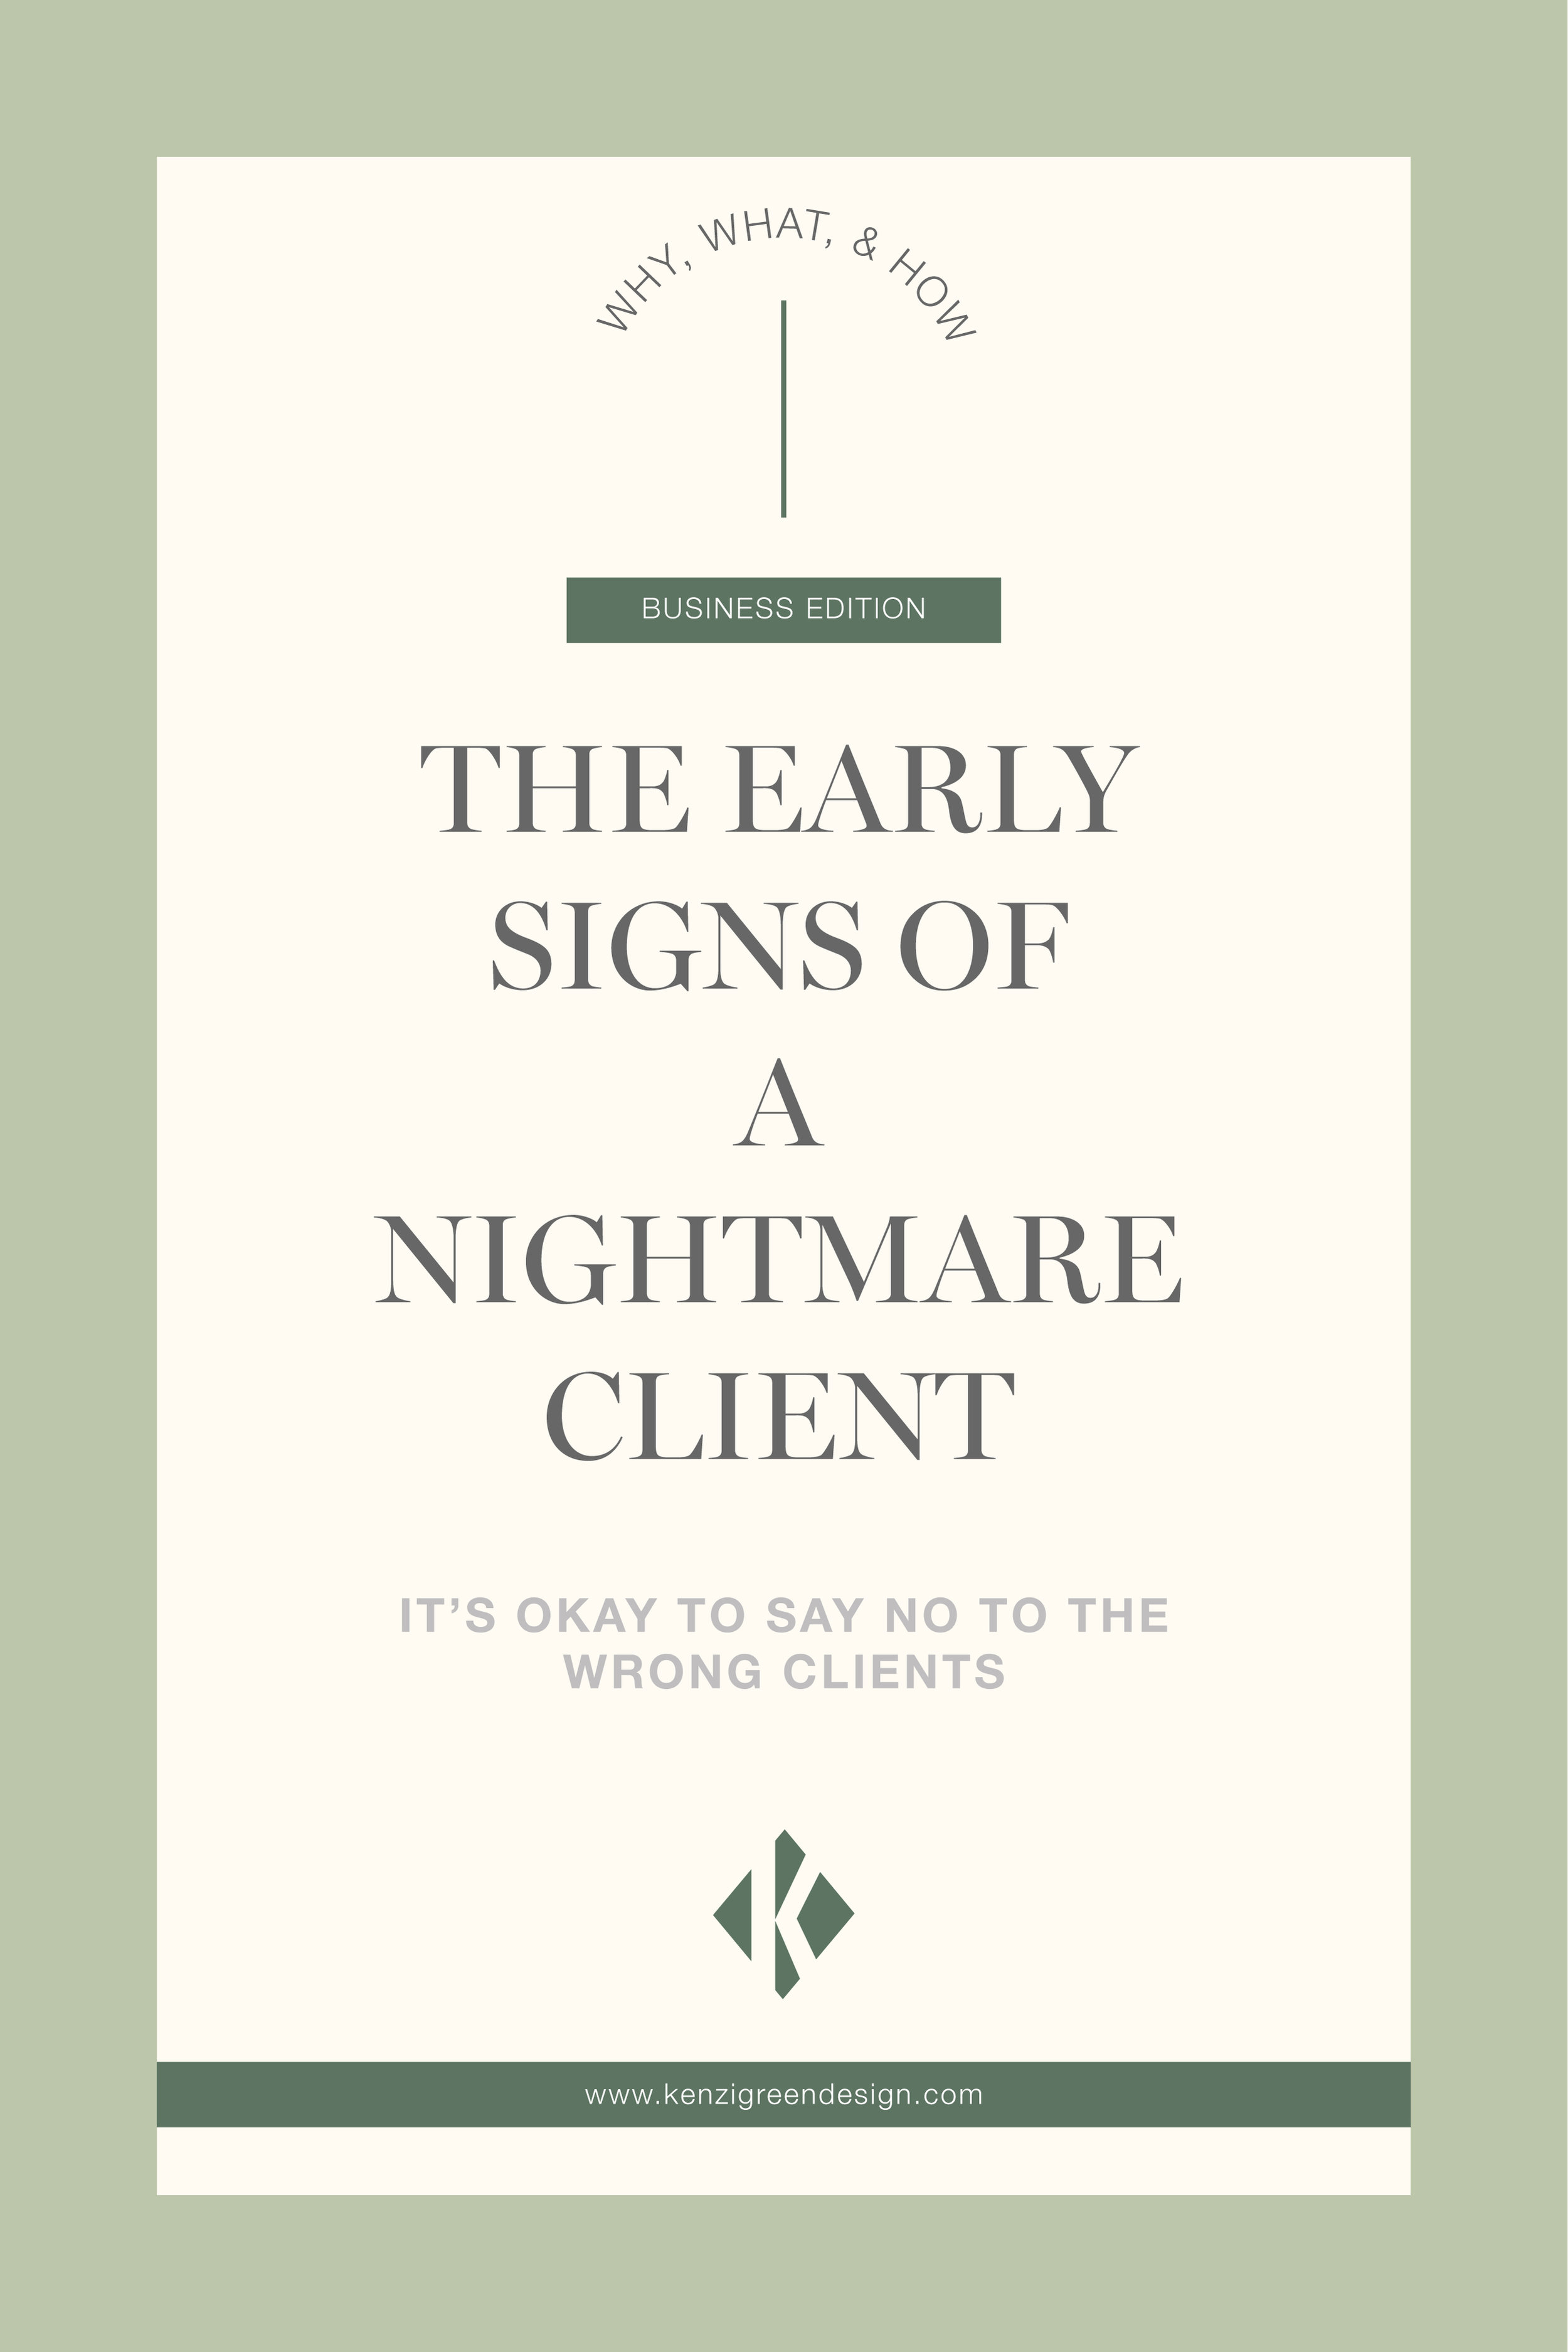 The Early Signs of a Nightmare Client. (It's okay to say no to the wrong clients) #businesstips #clientredflags #businessowner #biztips